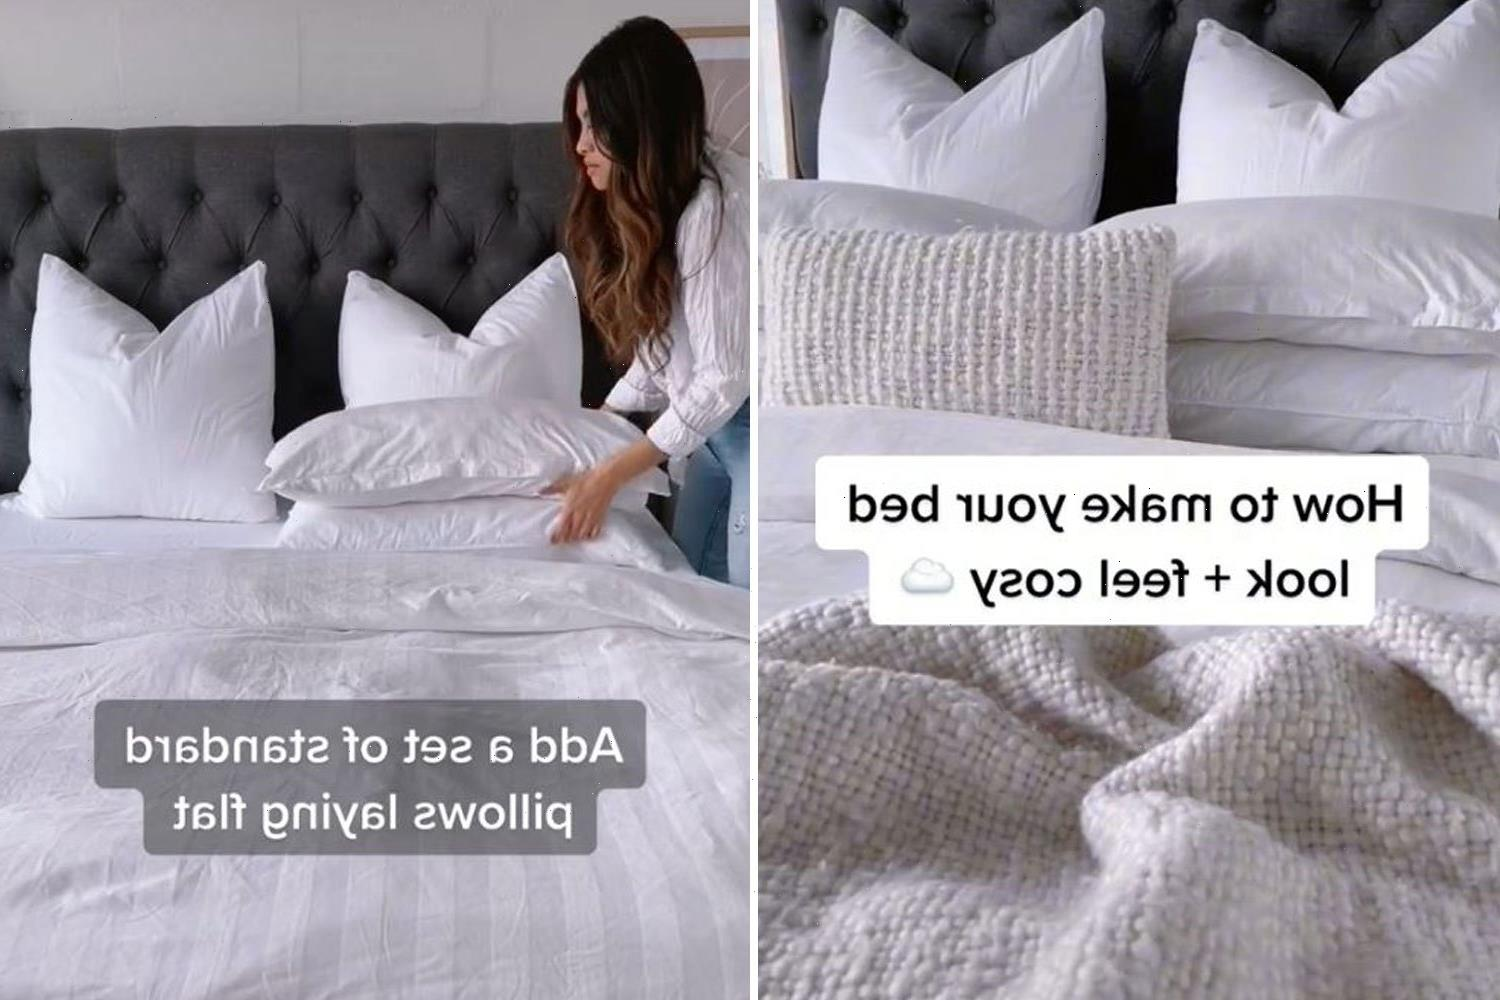 Cleaning expert reveals how to get your bed hotel room cosy every time – and it's all in the sheets